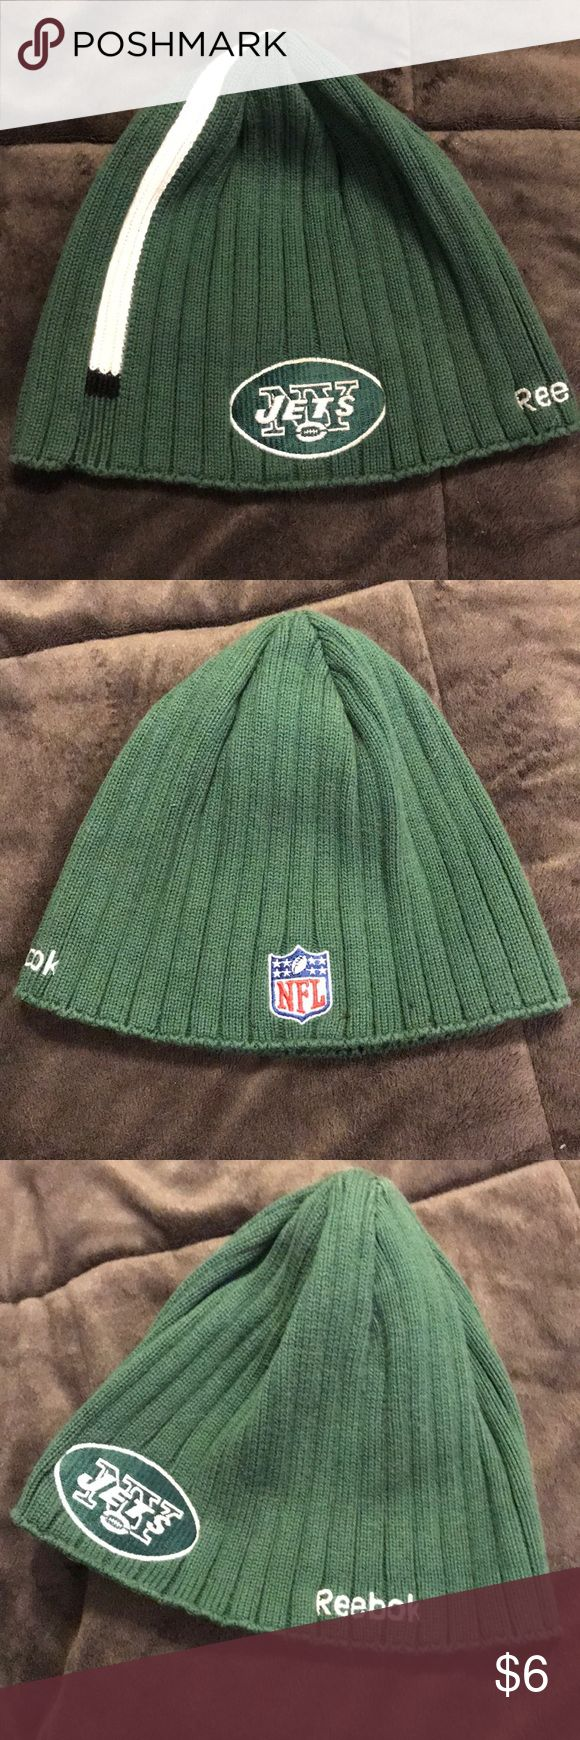 Beanie hat NY Jets beanie hat. Sweater material. Reebok Accessories Hats